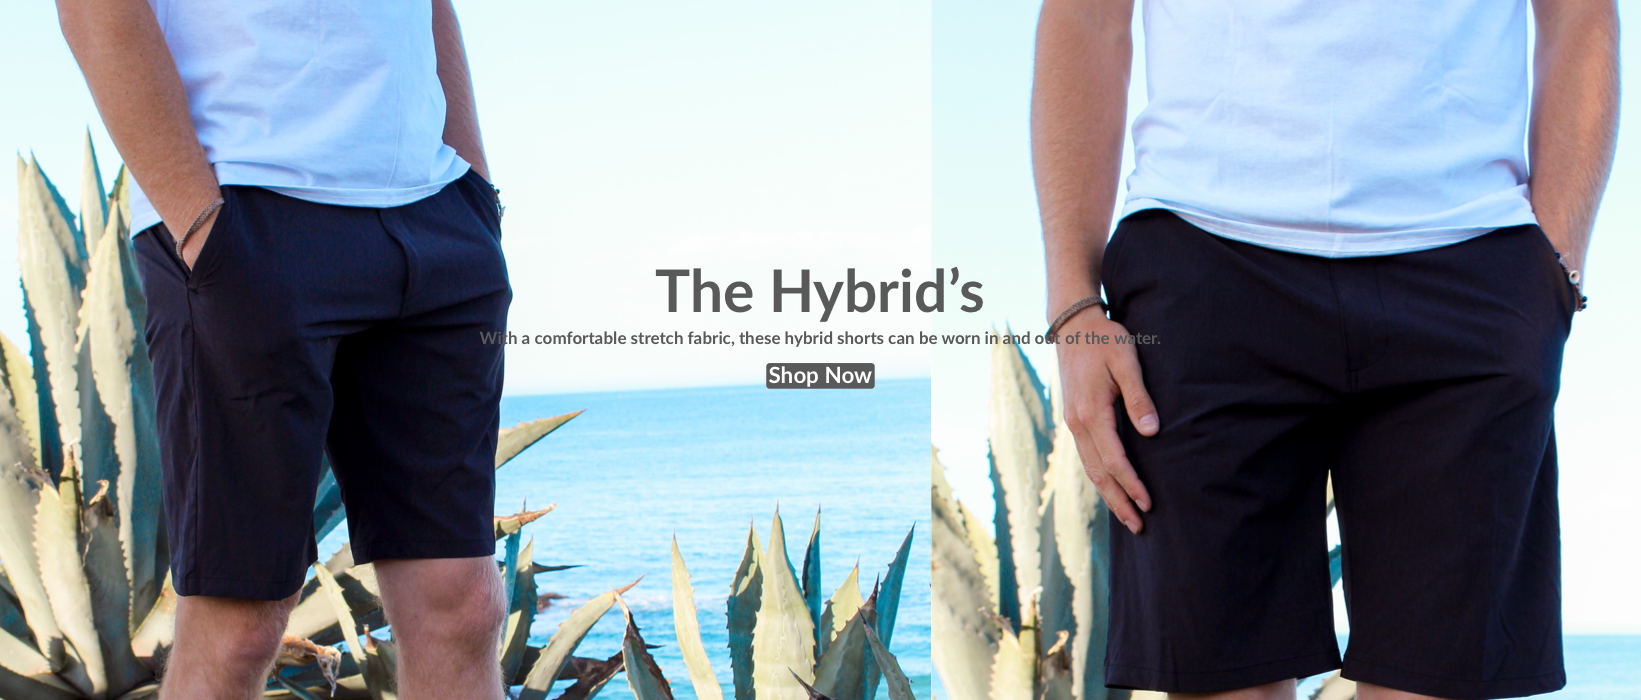 The Hybrid's | With a comfortable stretch fabric, these hybrid shorts can be worn in and out of the water.